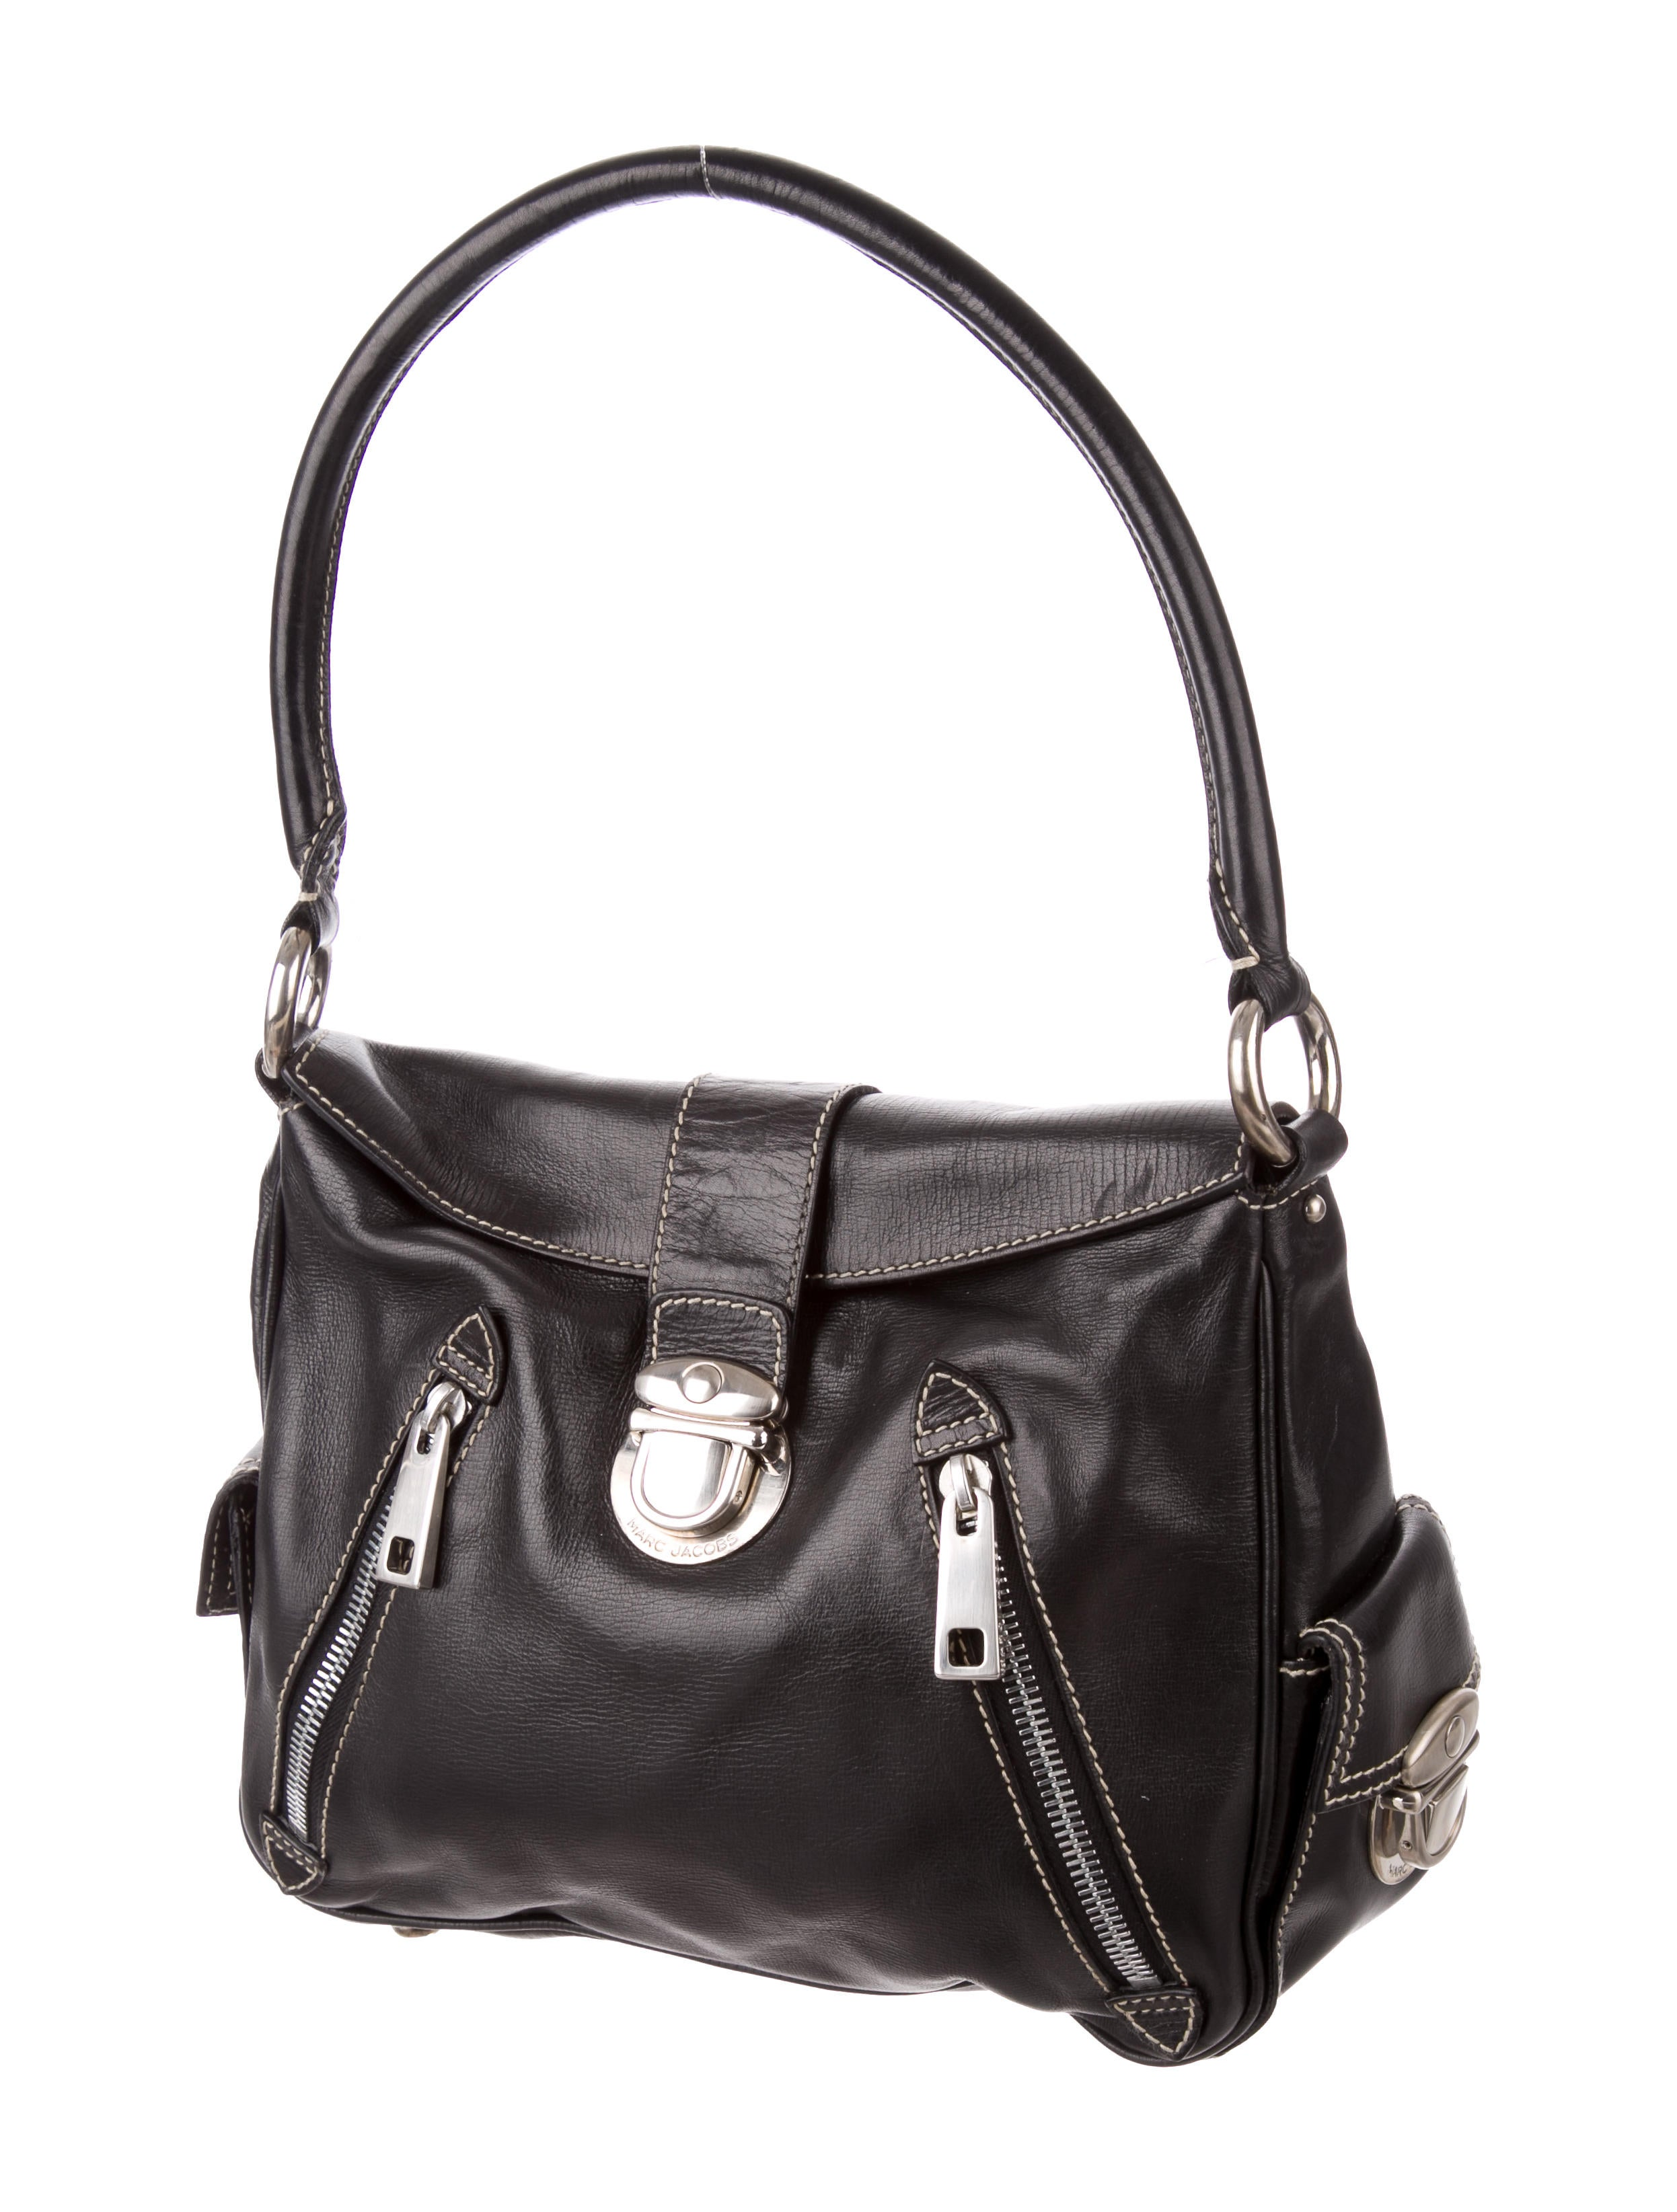 Marc Jacobs Hobo Laukku : Marc jacobs leather hobo handbags mar the realreal